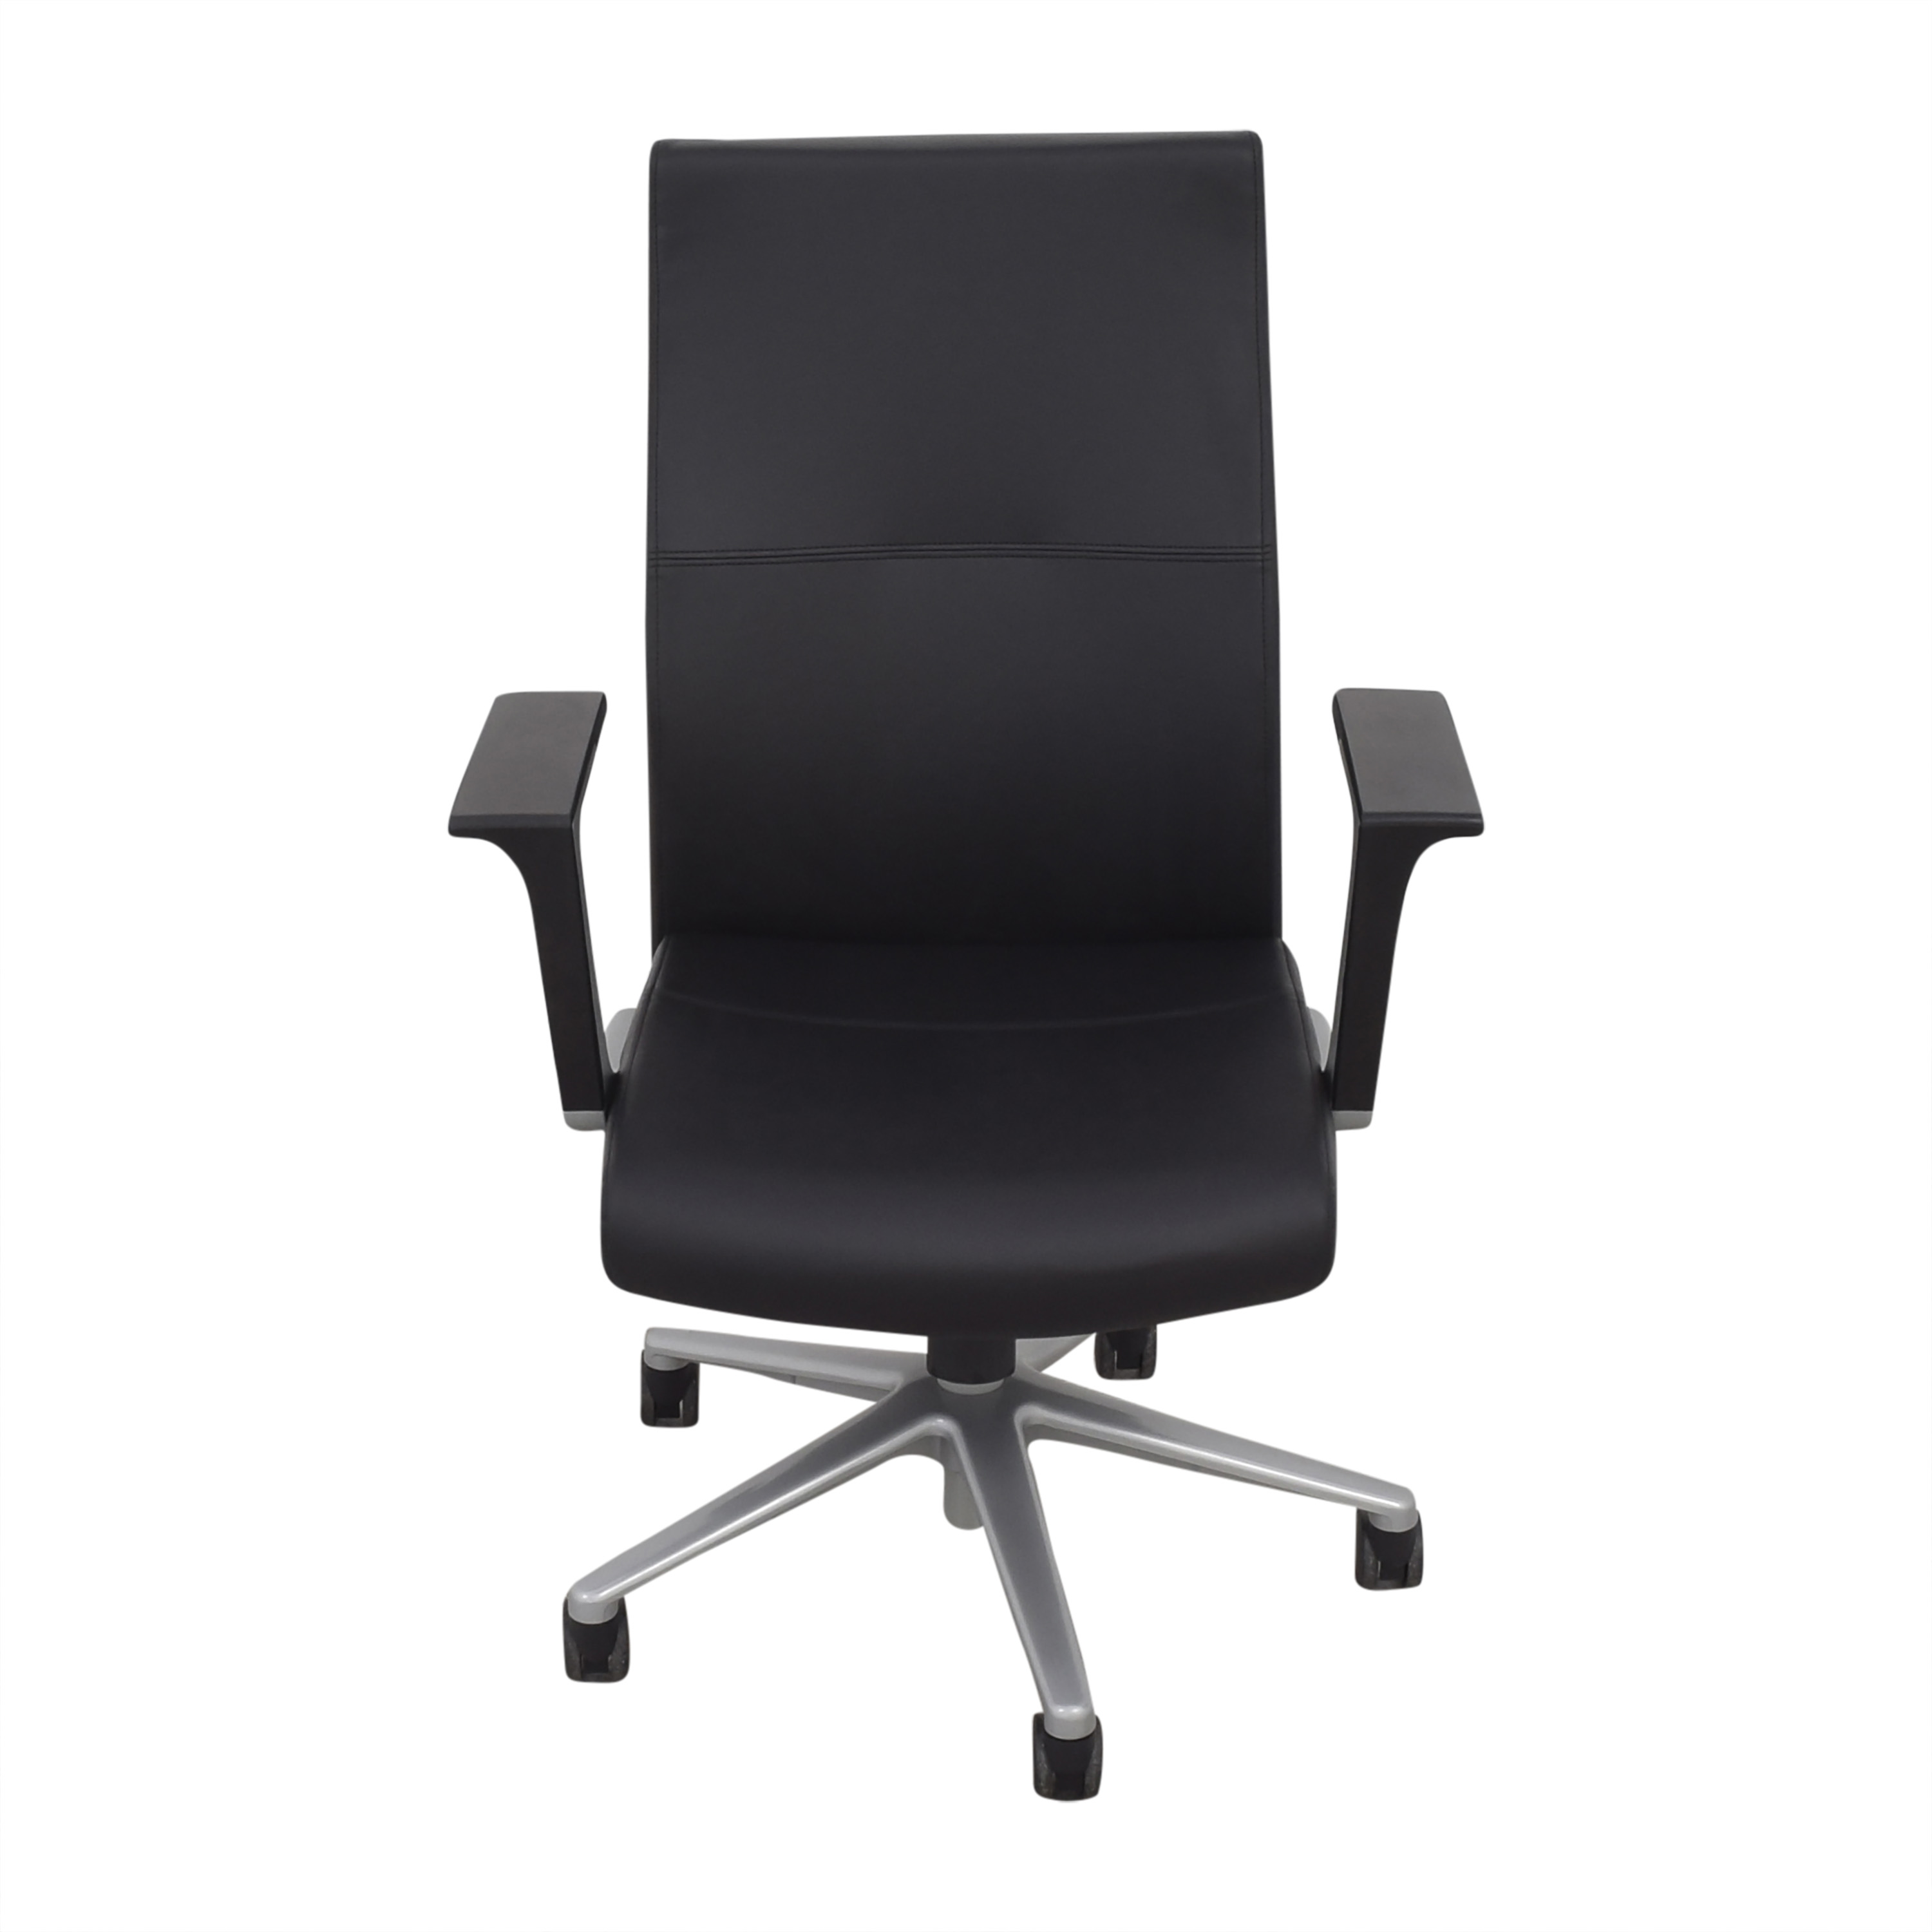 SitOnIt SitOnIt Prava Office Chair second hand